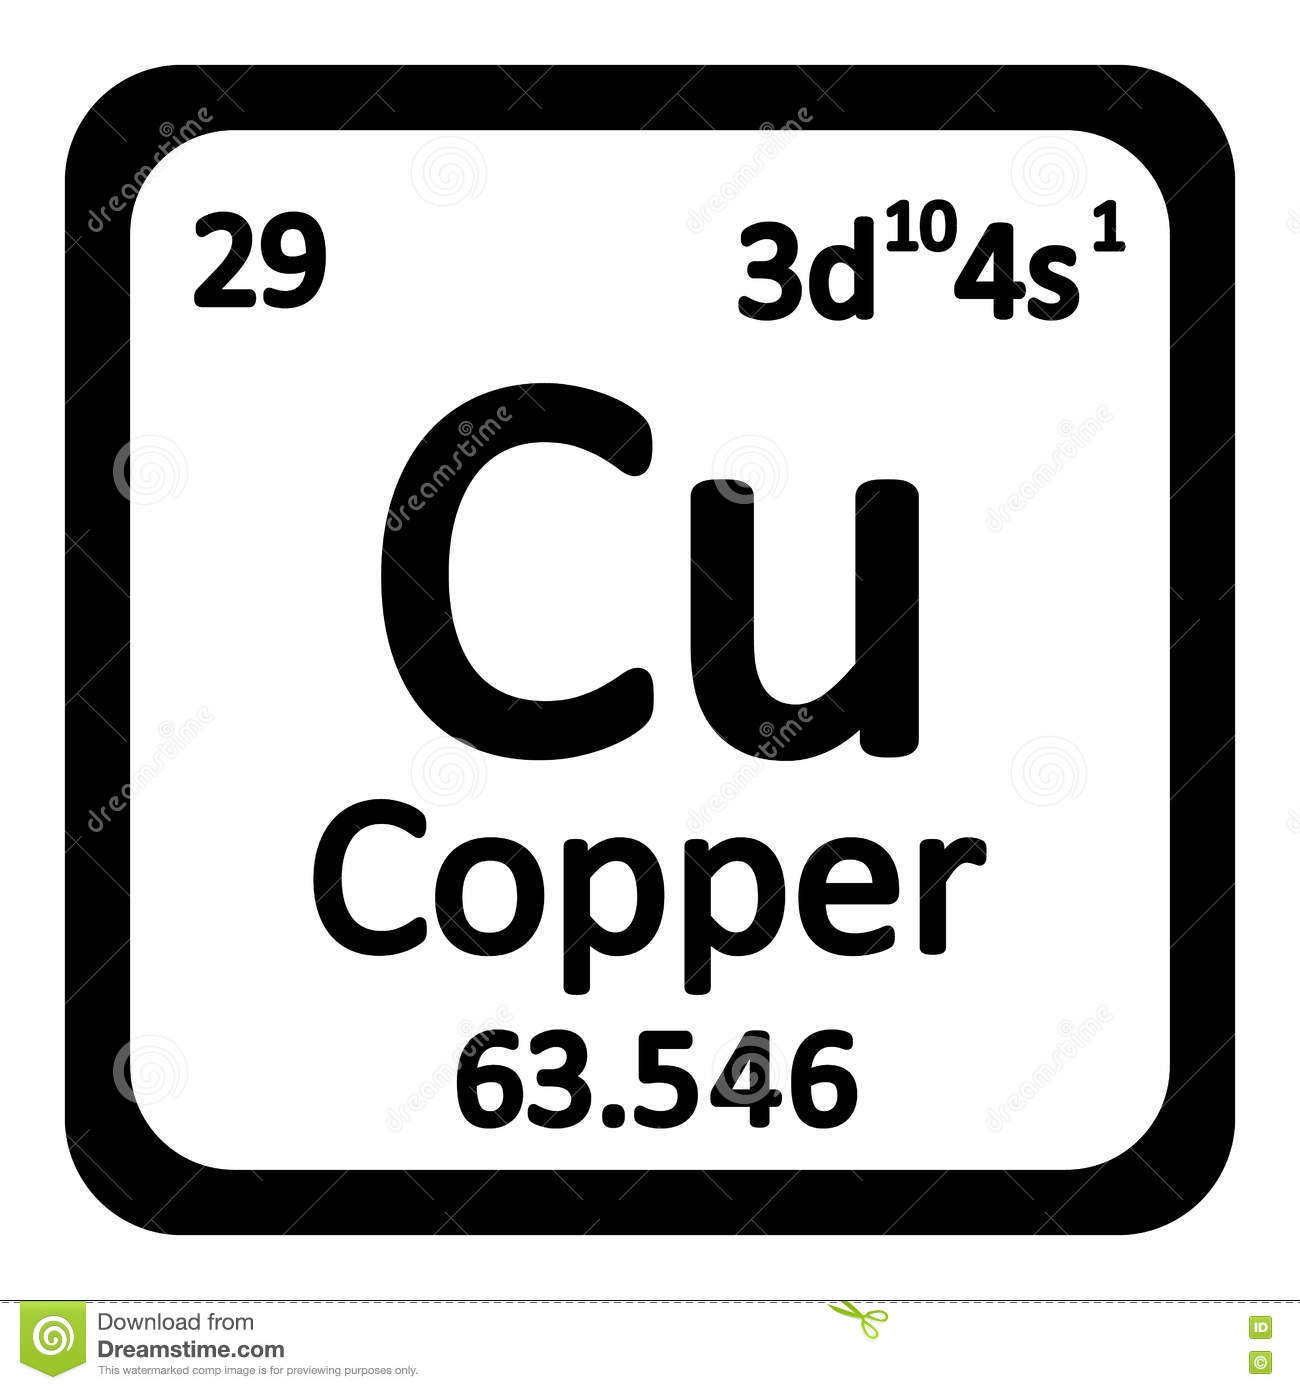 Periodic table element copper icon stock illustration periodic table element copper icon biocorpaavc Image collections